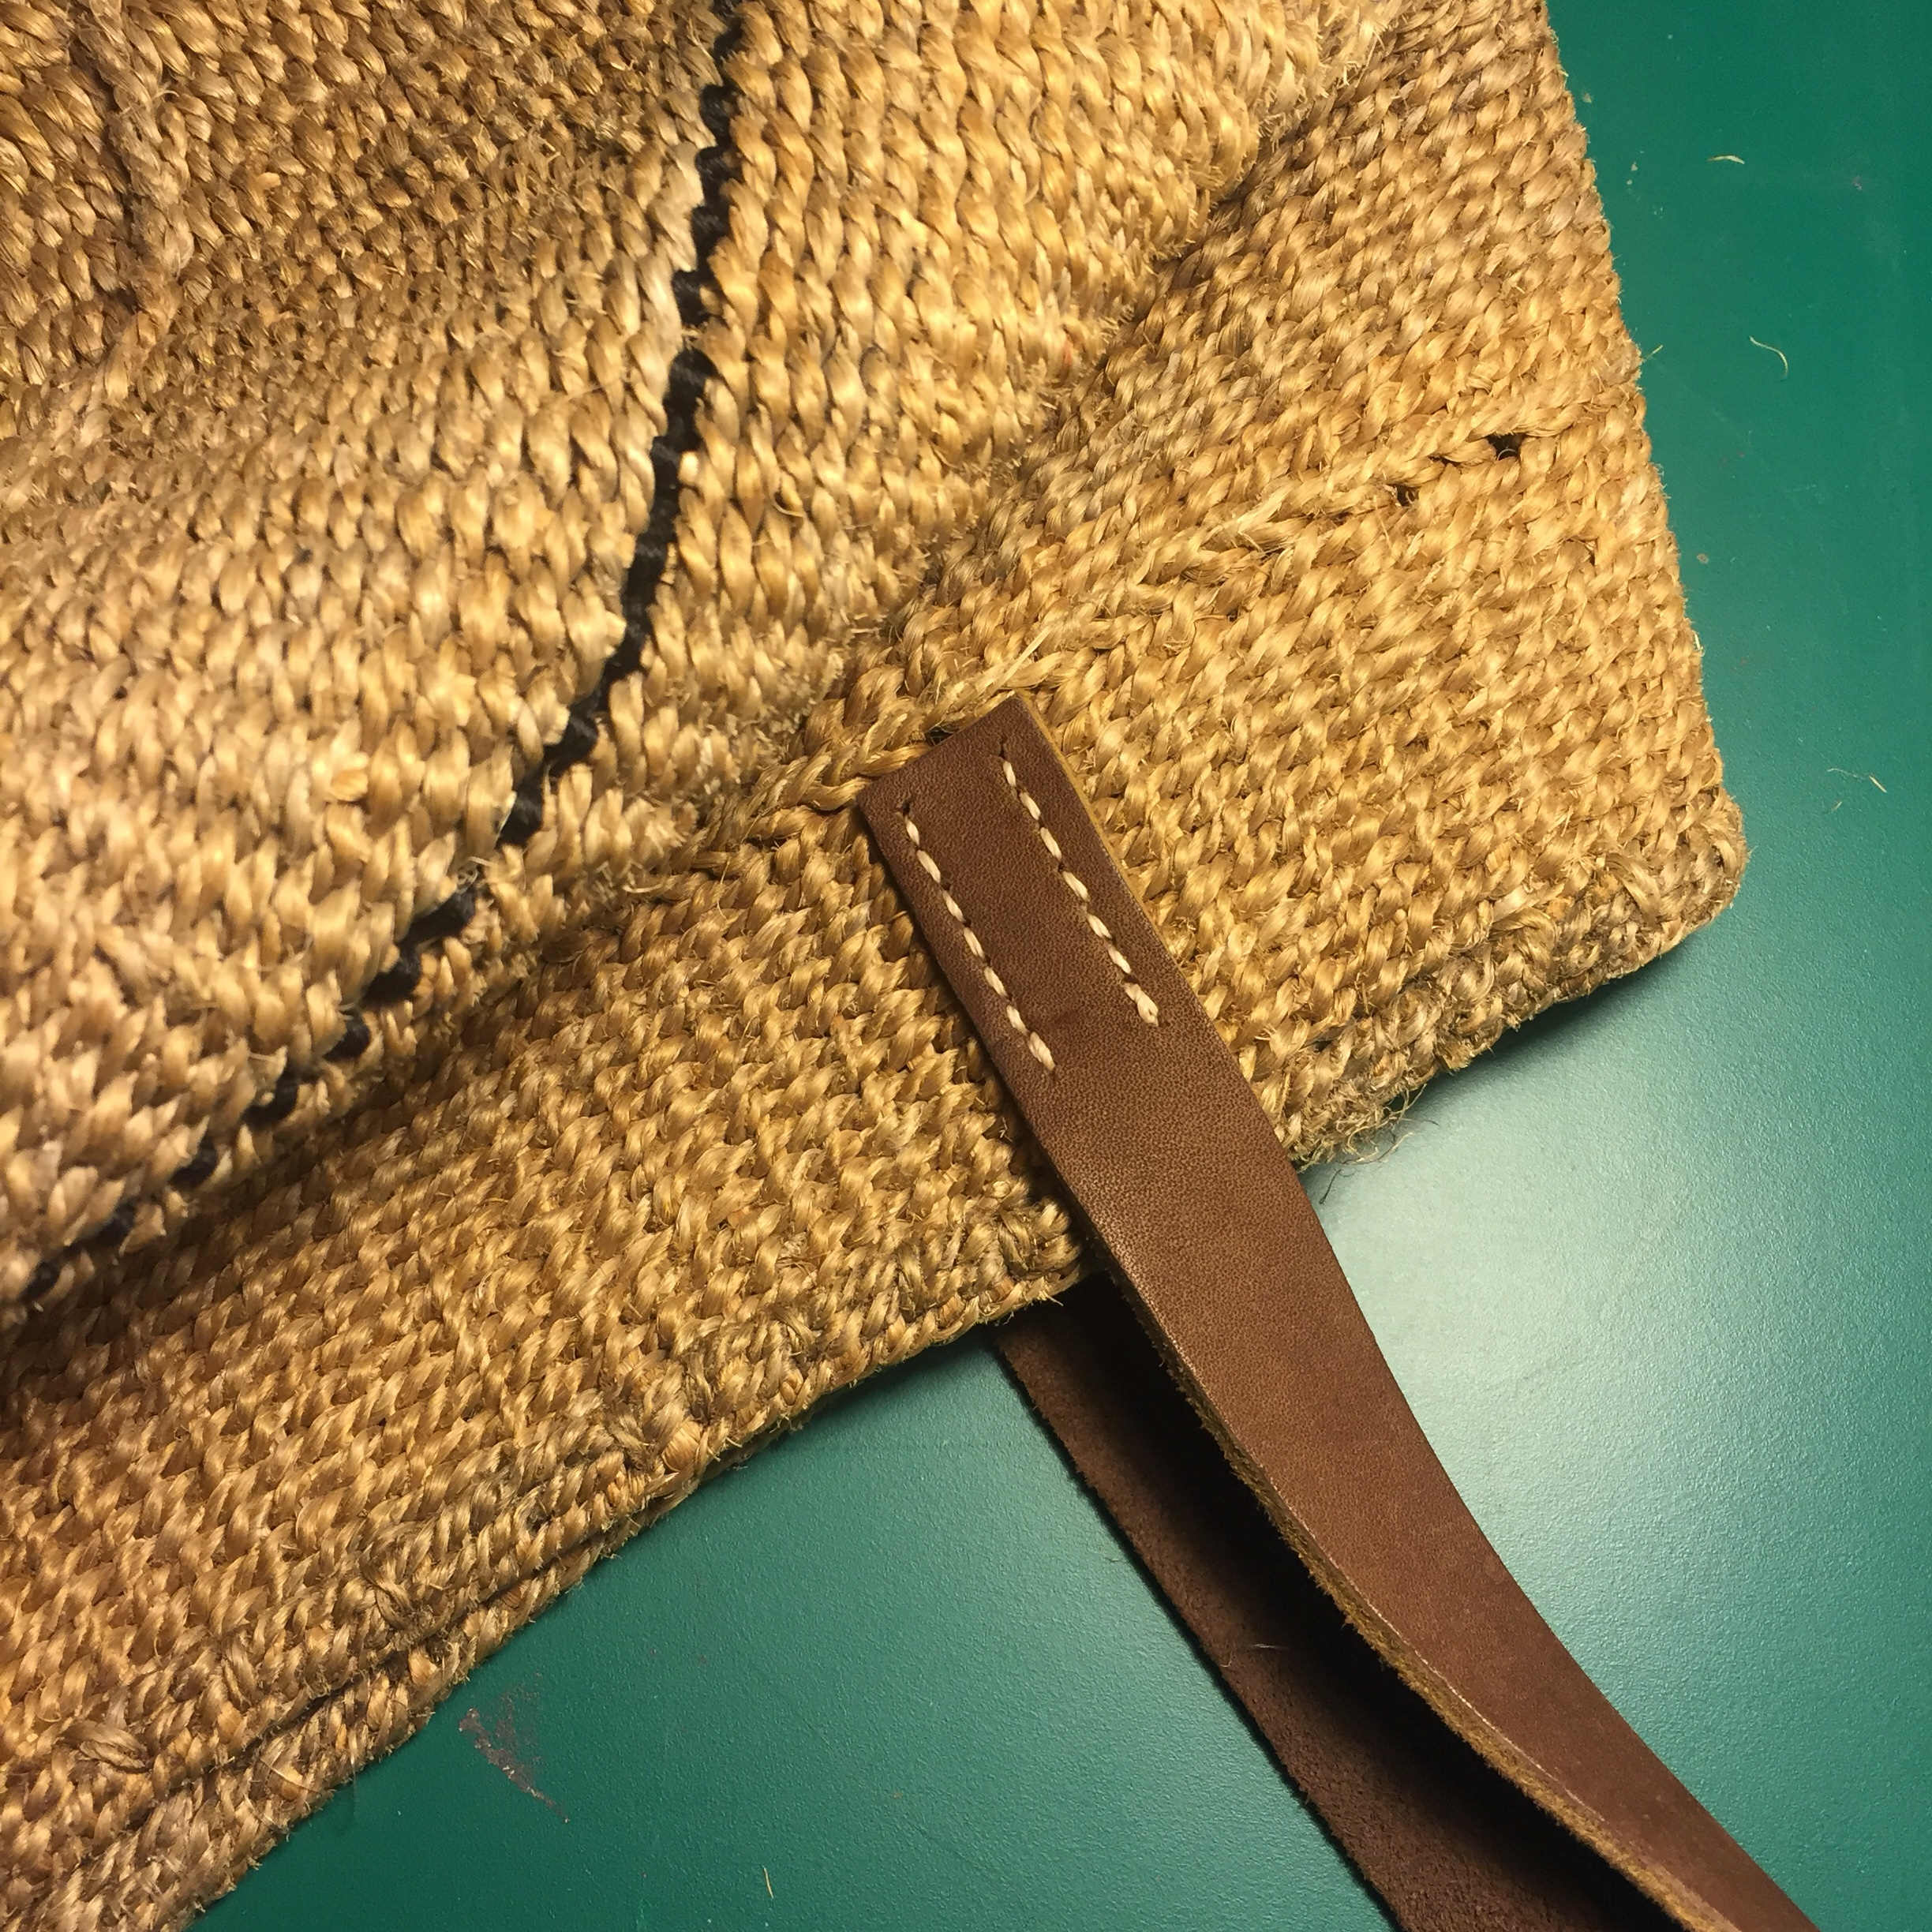 Brown leather strap repair on straw bag